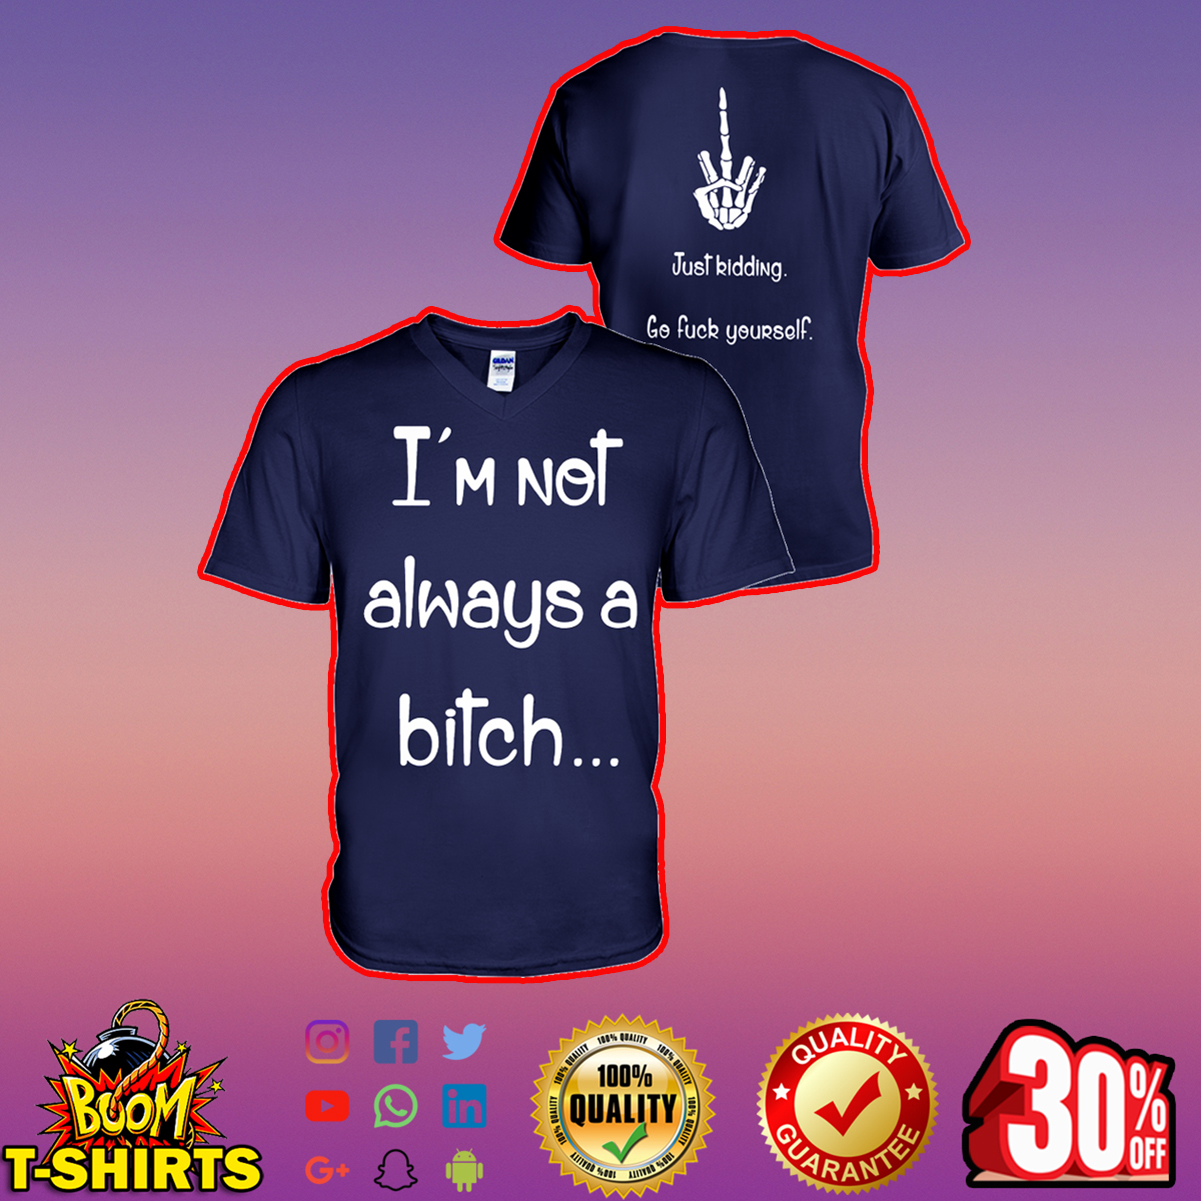 I'm not always a bitch just kidding go fuck yourseft v-neck